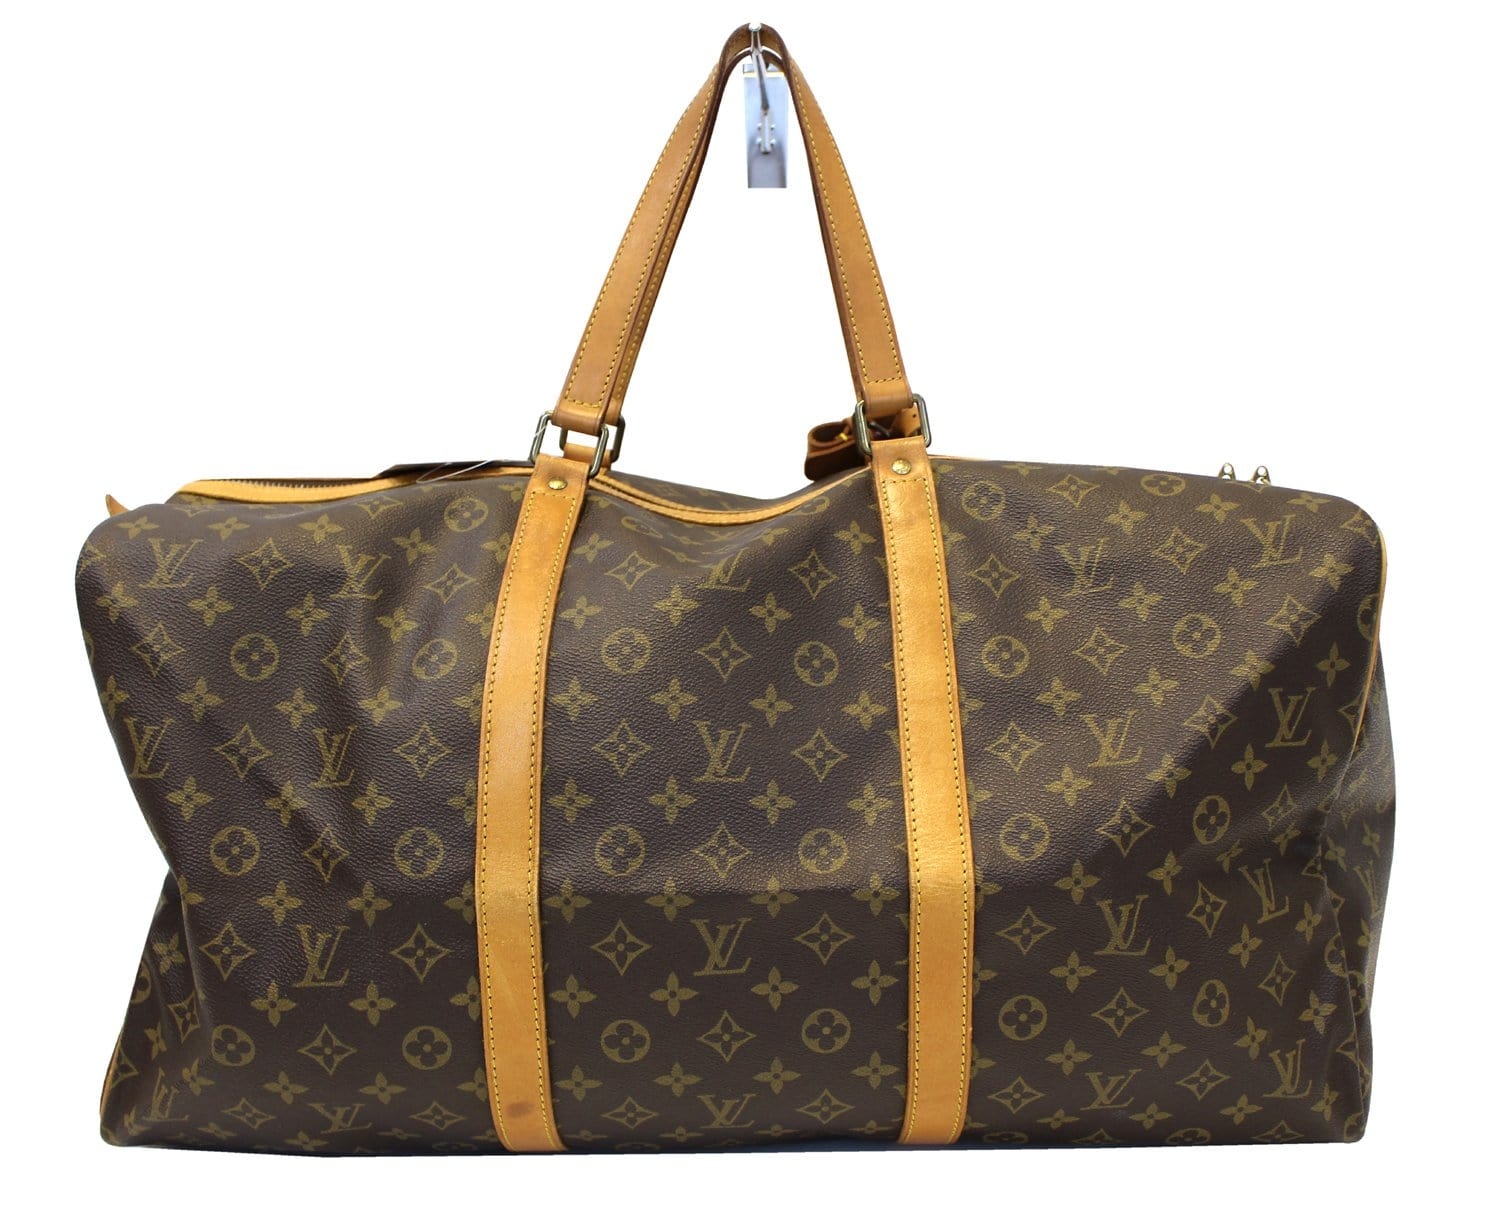 f62d3299f65 LOUIS VUITTON Monogram Sac Souple 55 Boston Bag